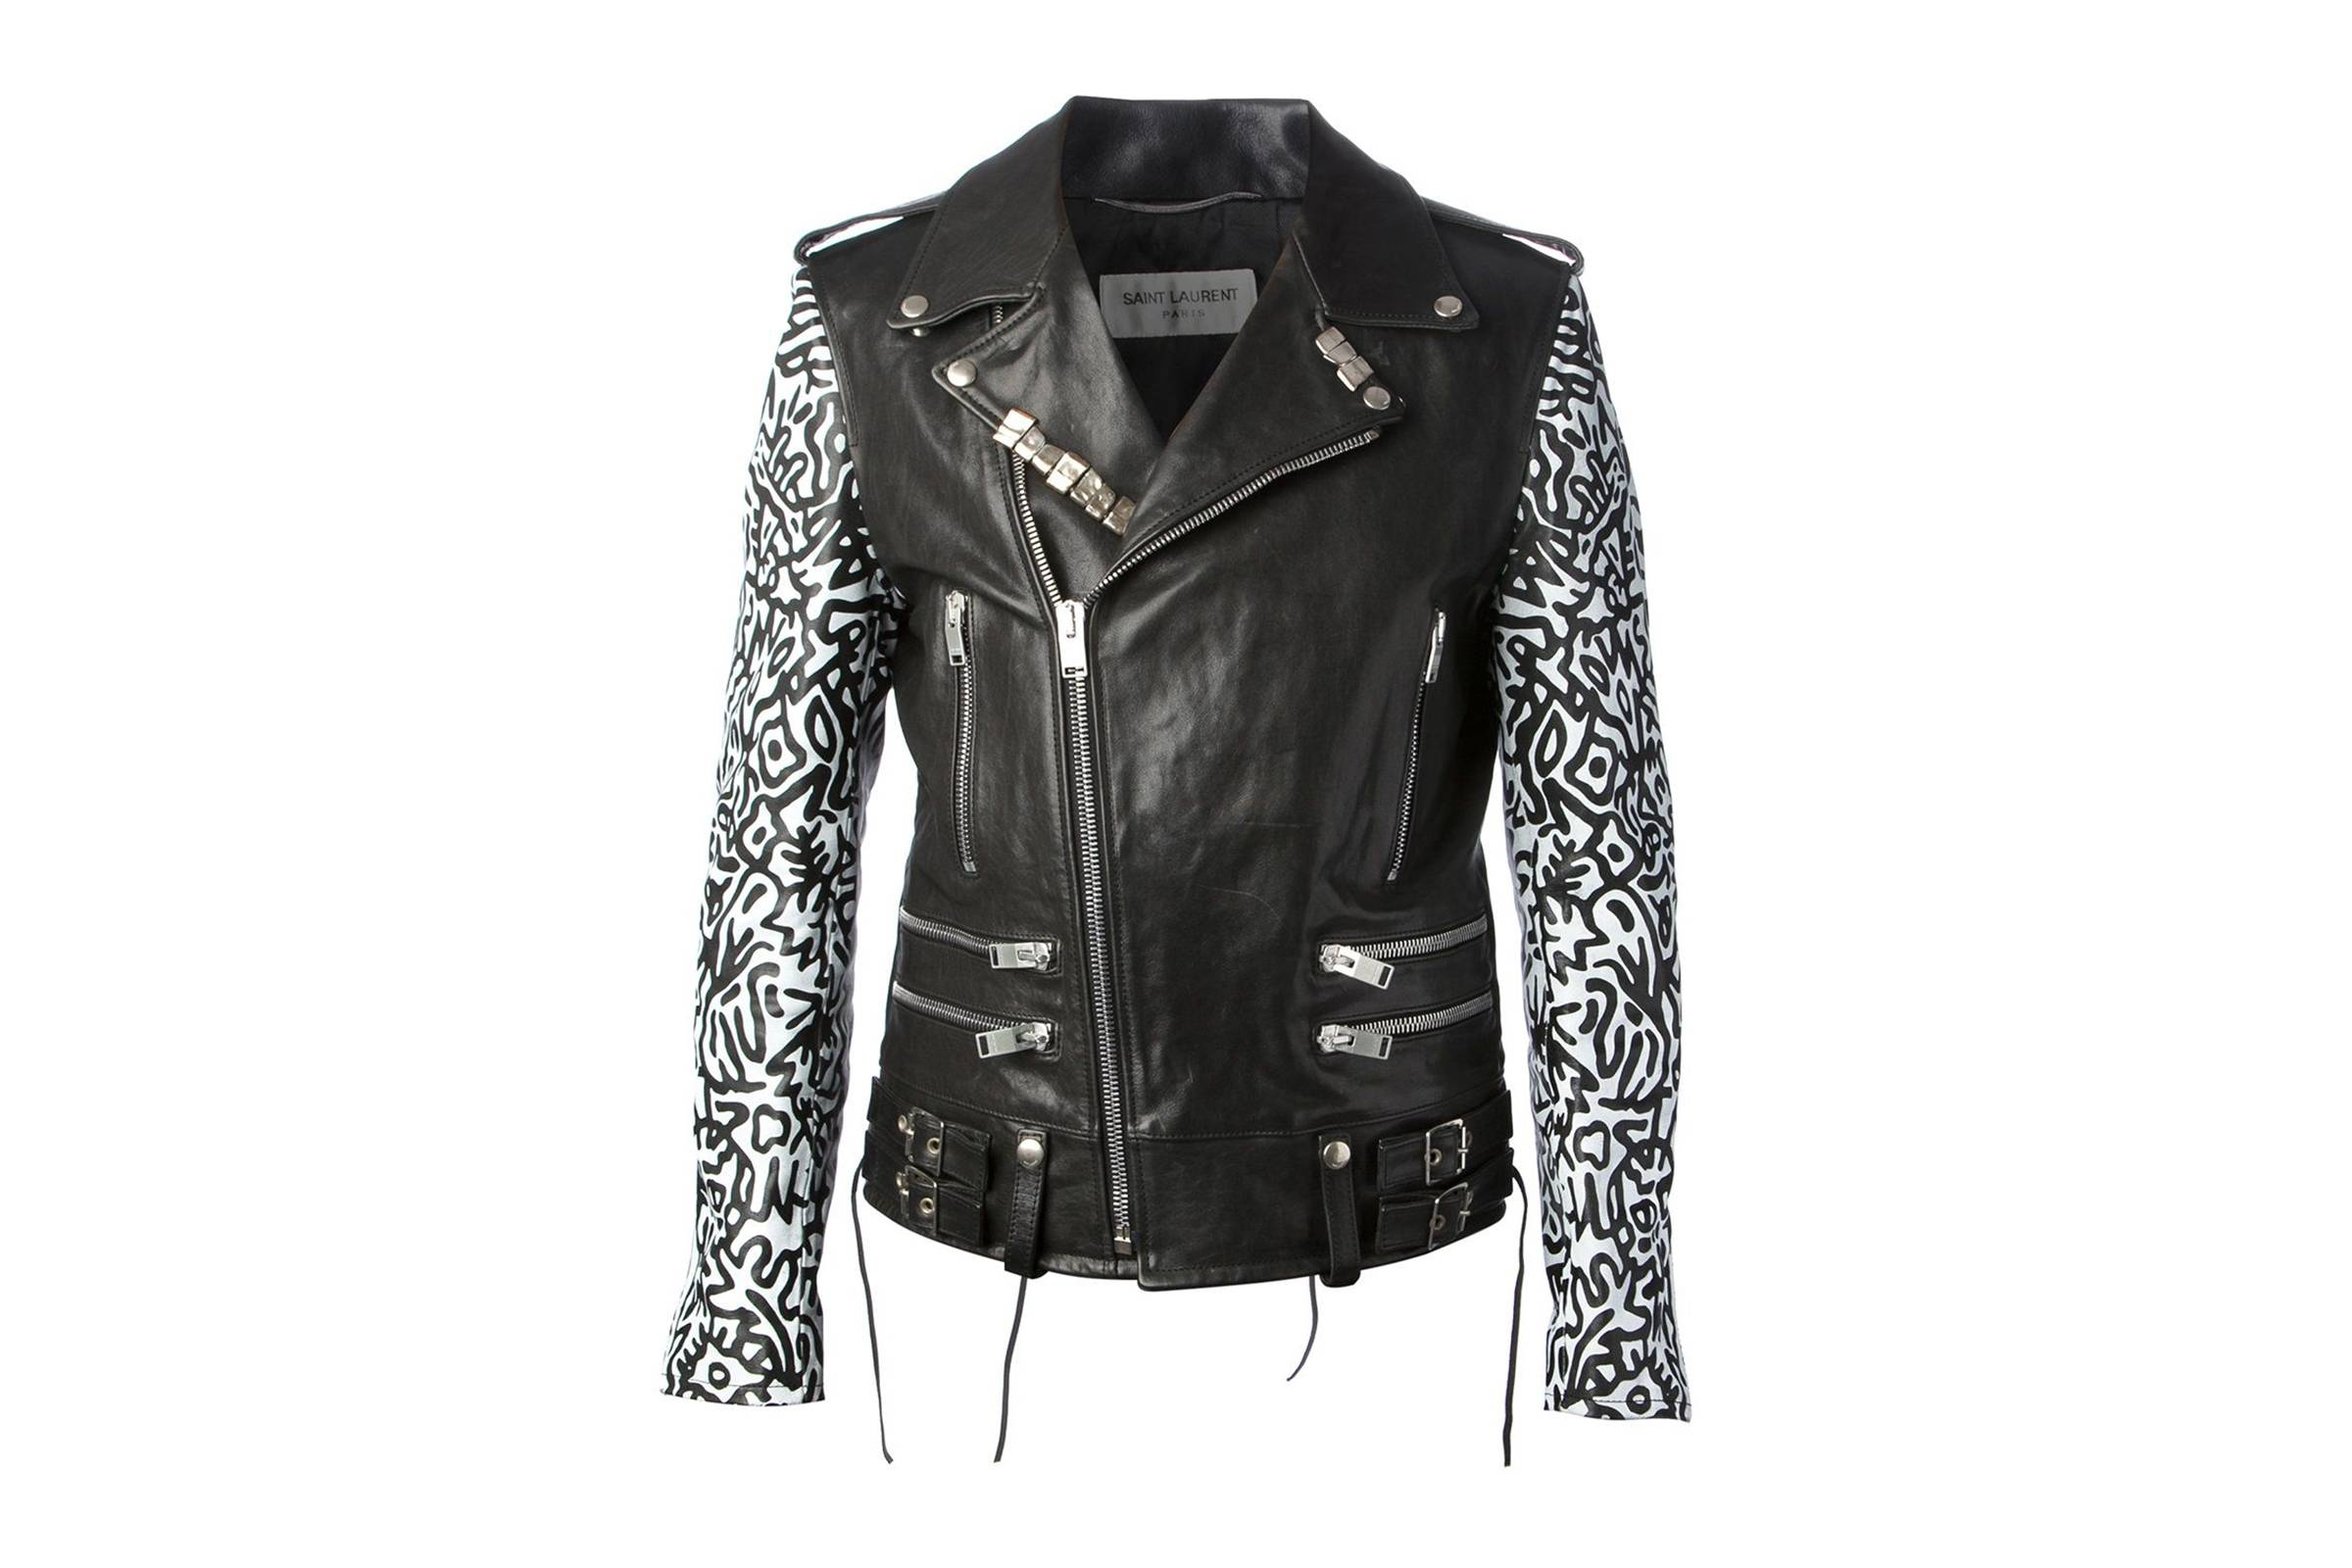 Saint Laurent Paris Fall/Winter 2013 Sumi Ink Club Leather Biker Jacket